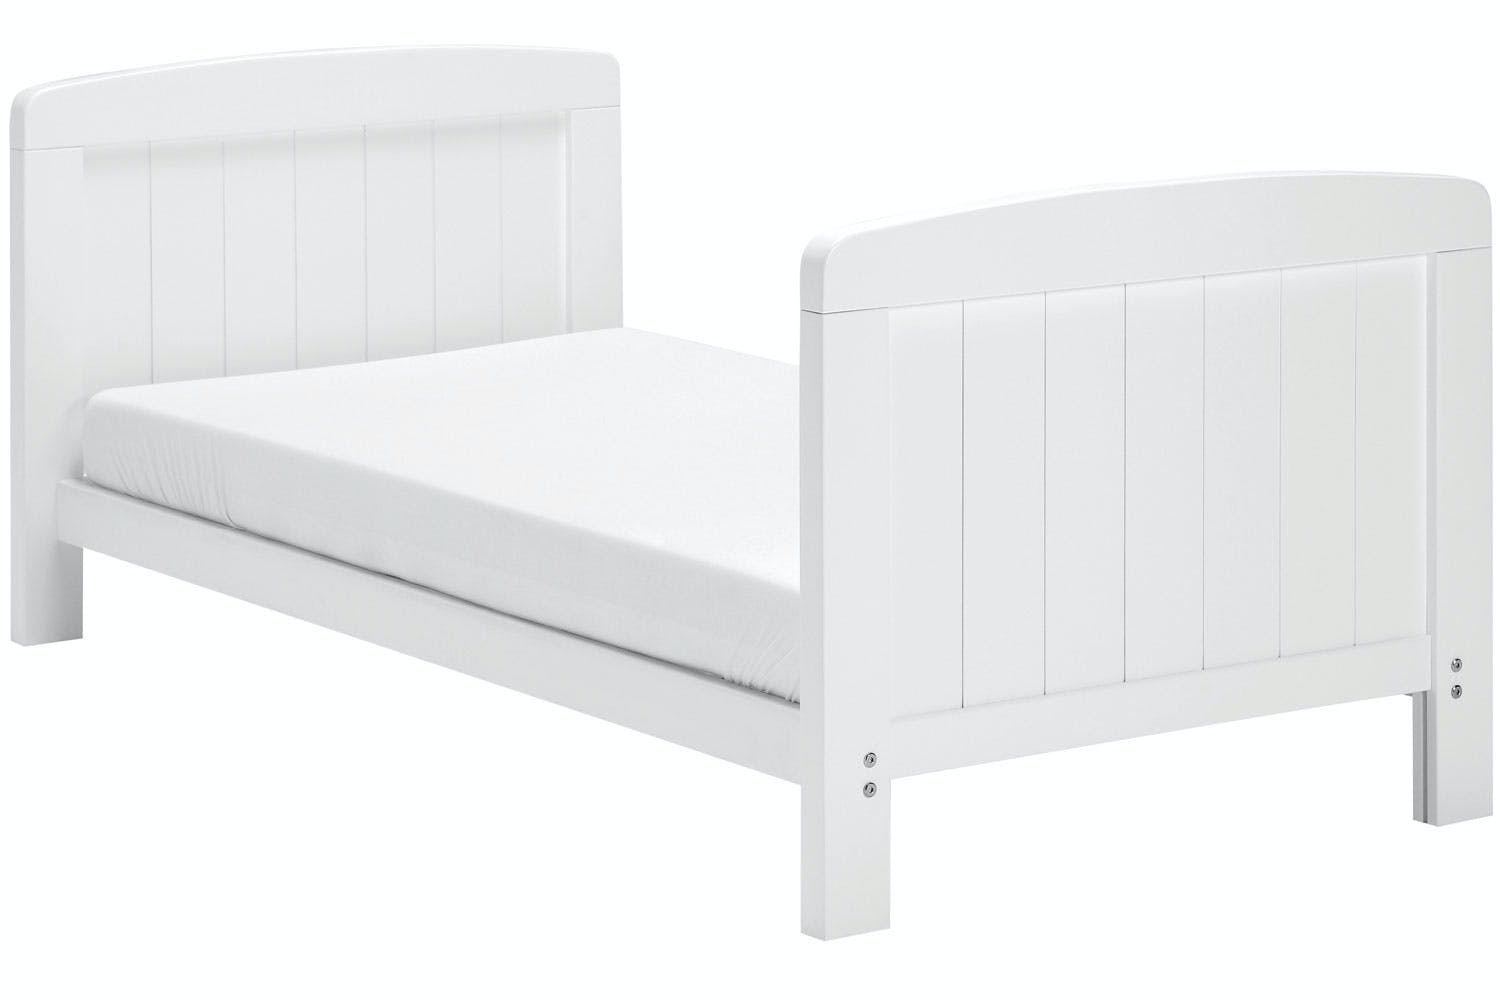 Austin 2-in-1 Cot Bed Frame | White | Ireland